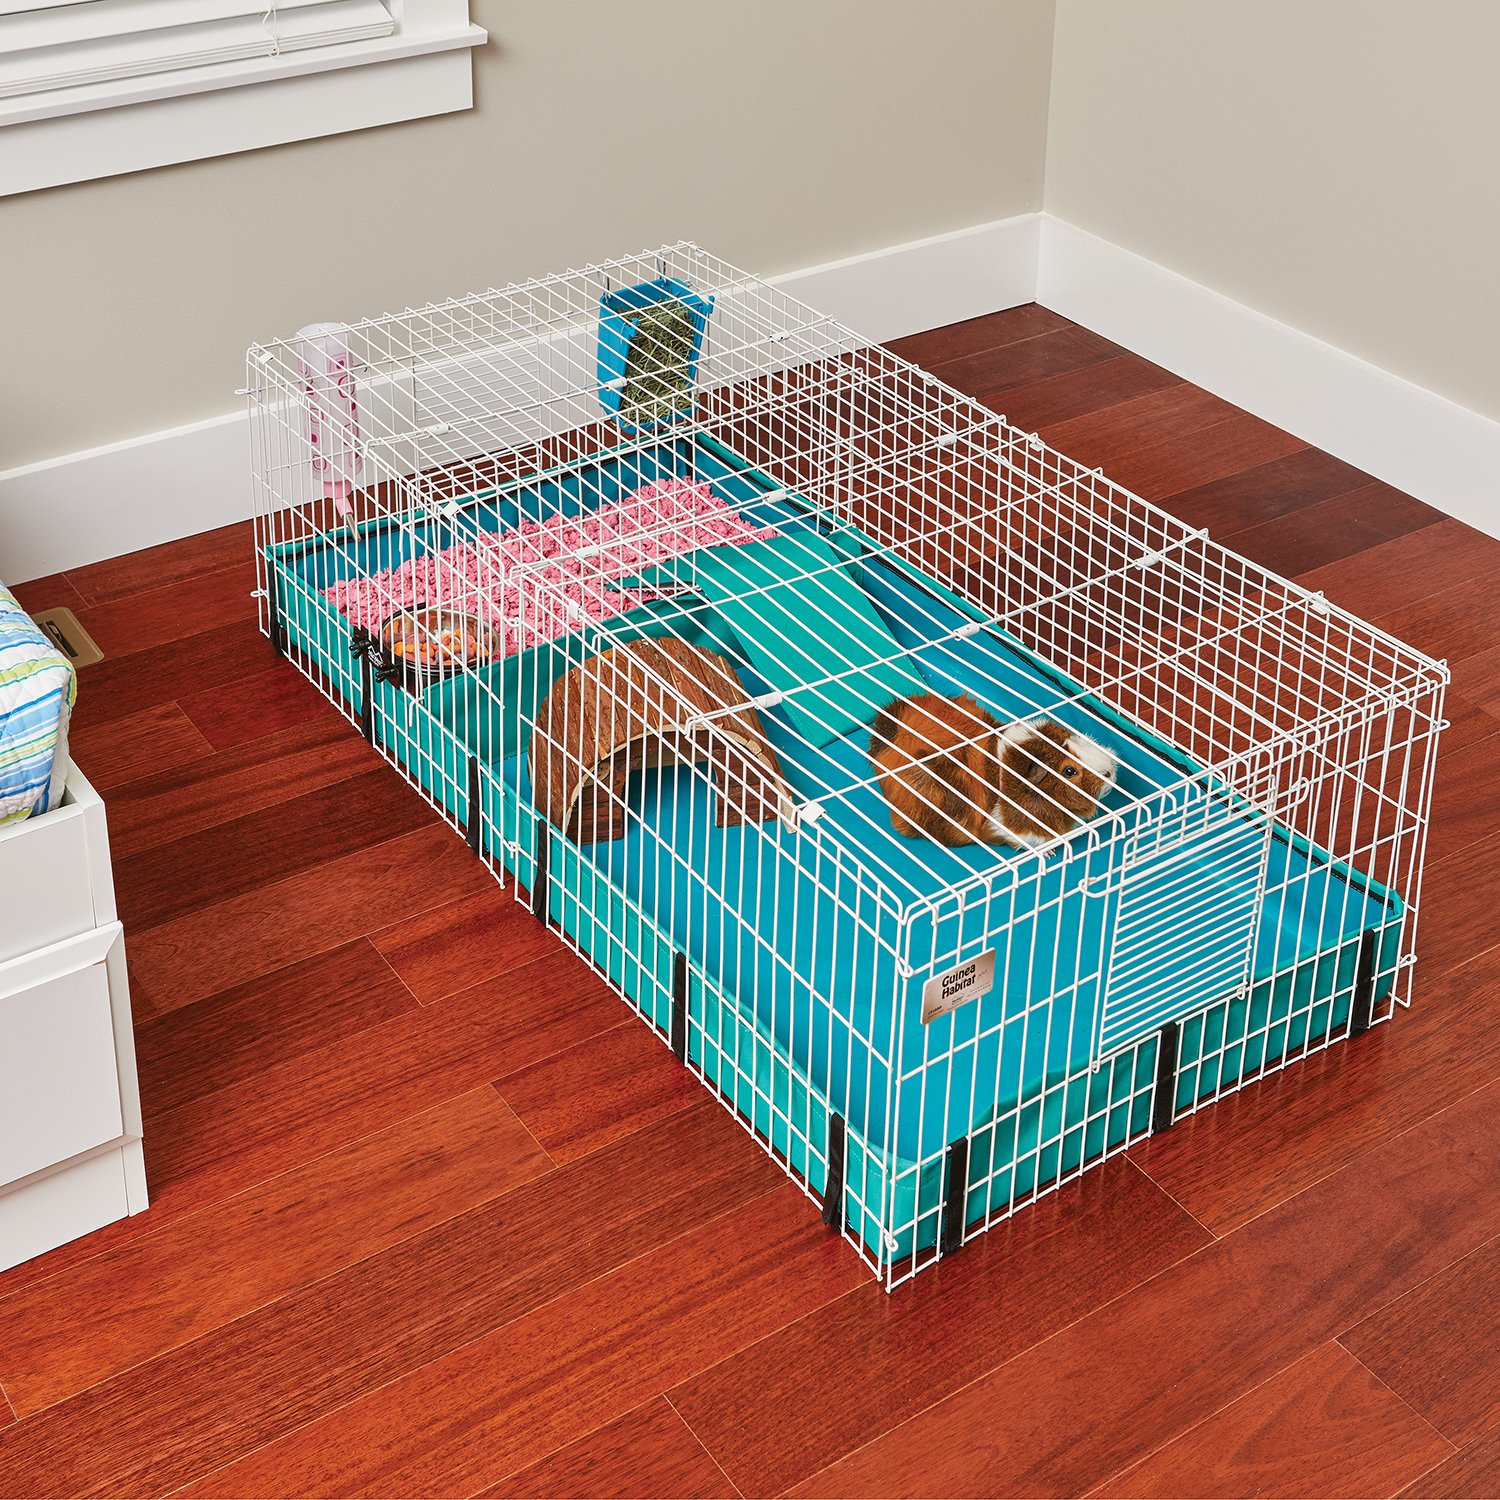 Guinea Habitat Plus Guinea Pig Cage by MidWest w/Top Panel, 47L x 24W x 14H Inches